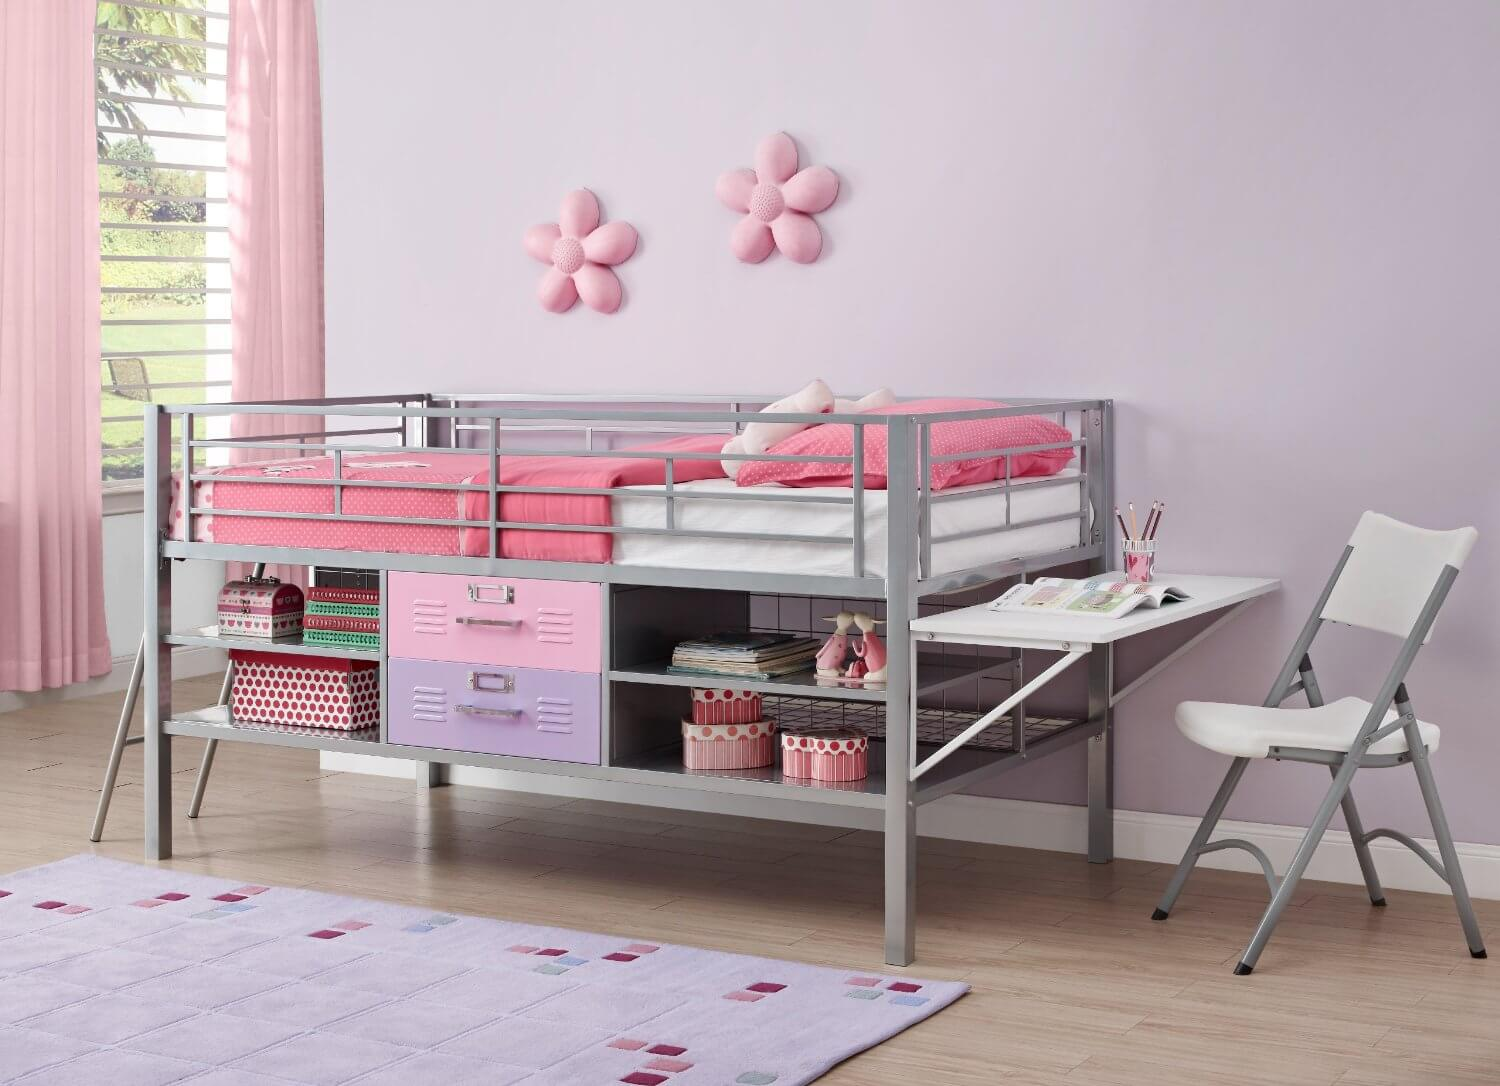 Loft Beds For Kids With Desk For A Price You Can Afford